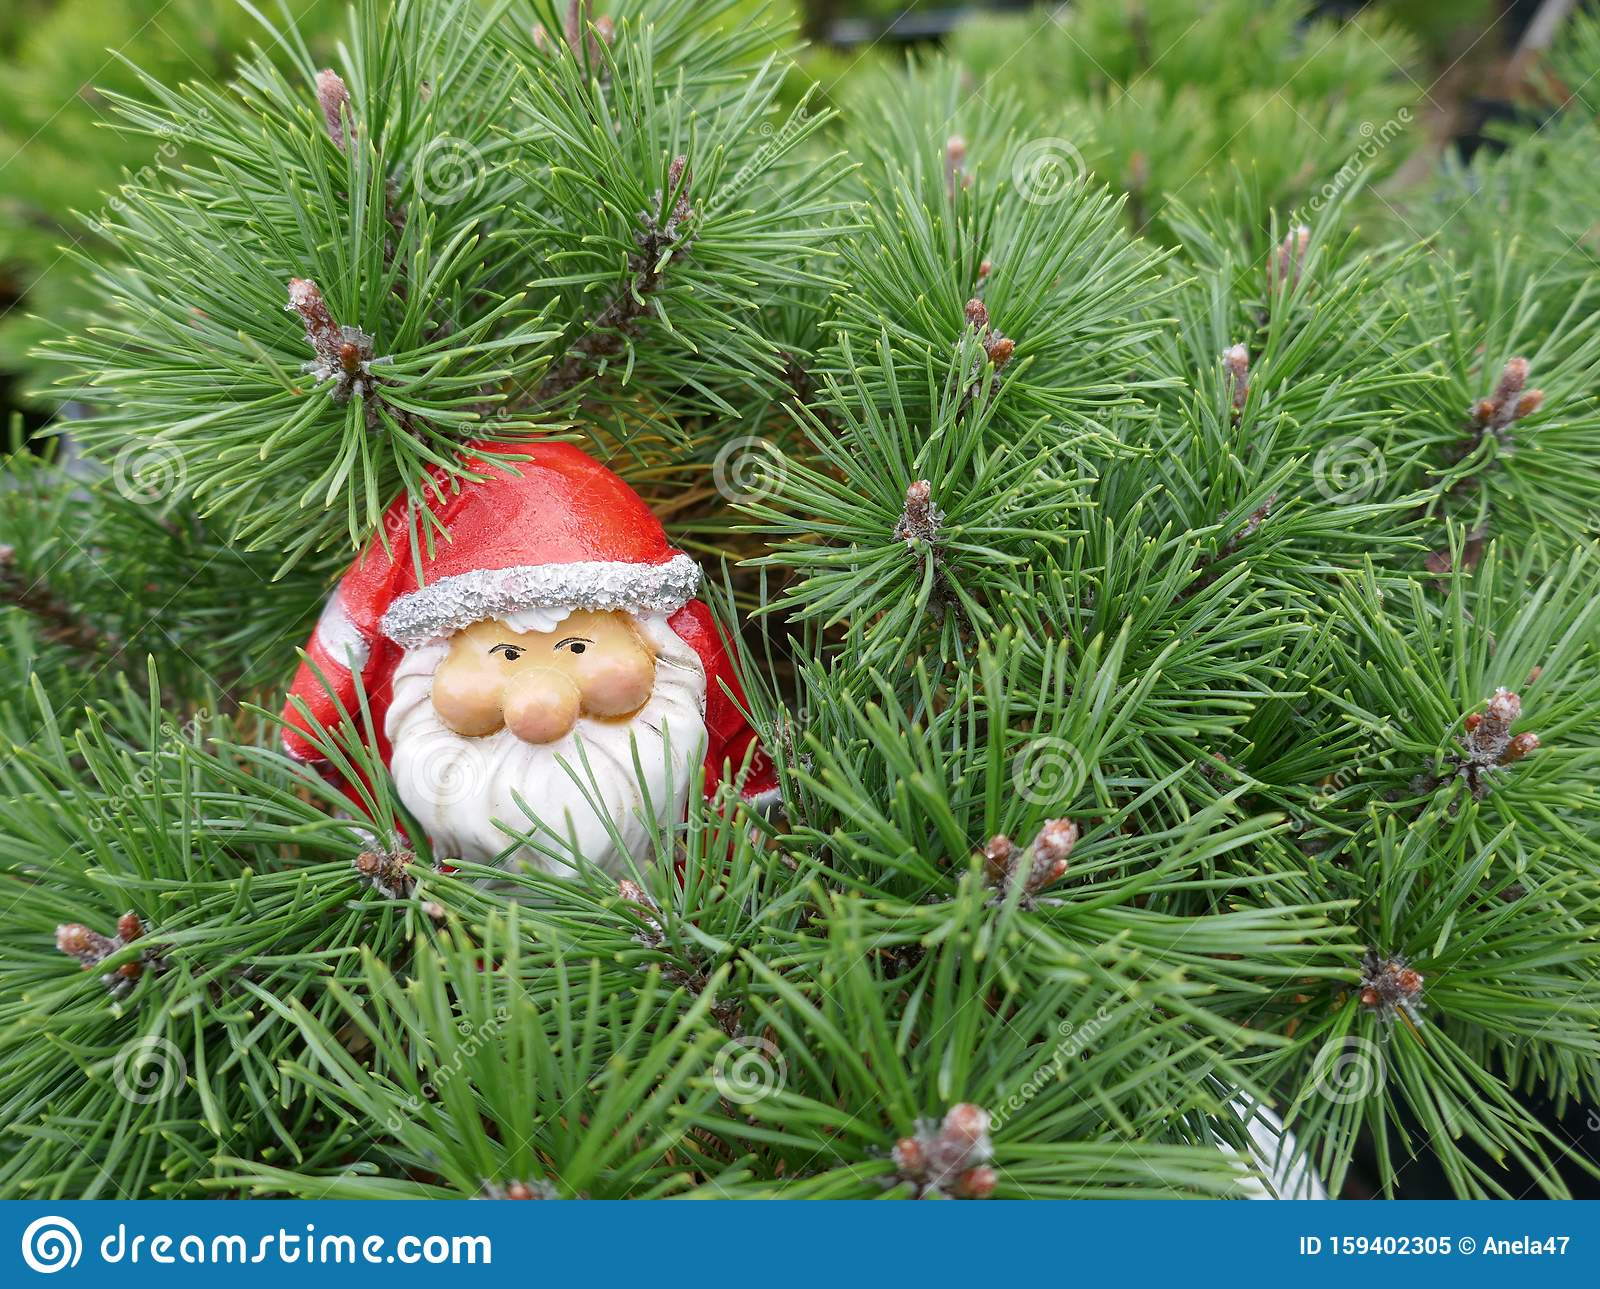 Santa Claus In The Forest A Cute Little Garden Gnome In Santa Claus Costume Hides In The Forest Between Pine Branches Stock Image Image Of Hides Beard 159402305